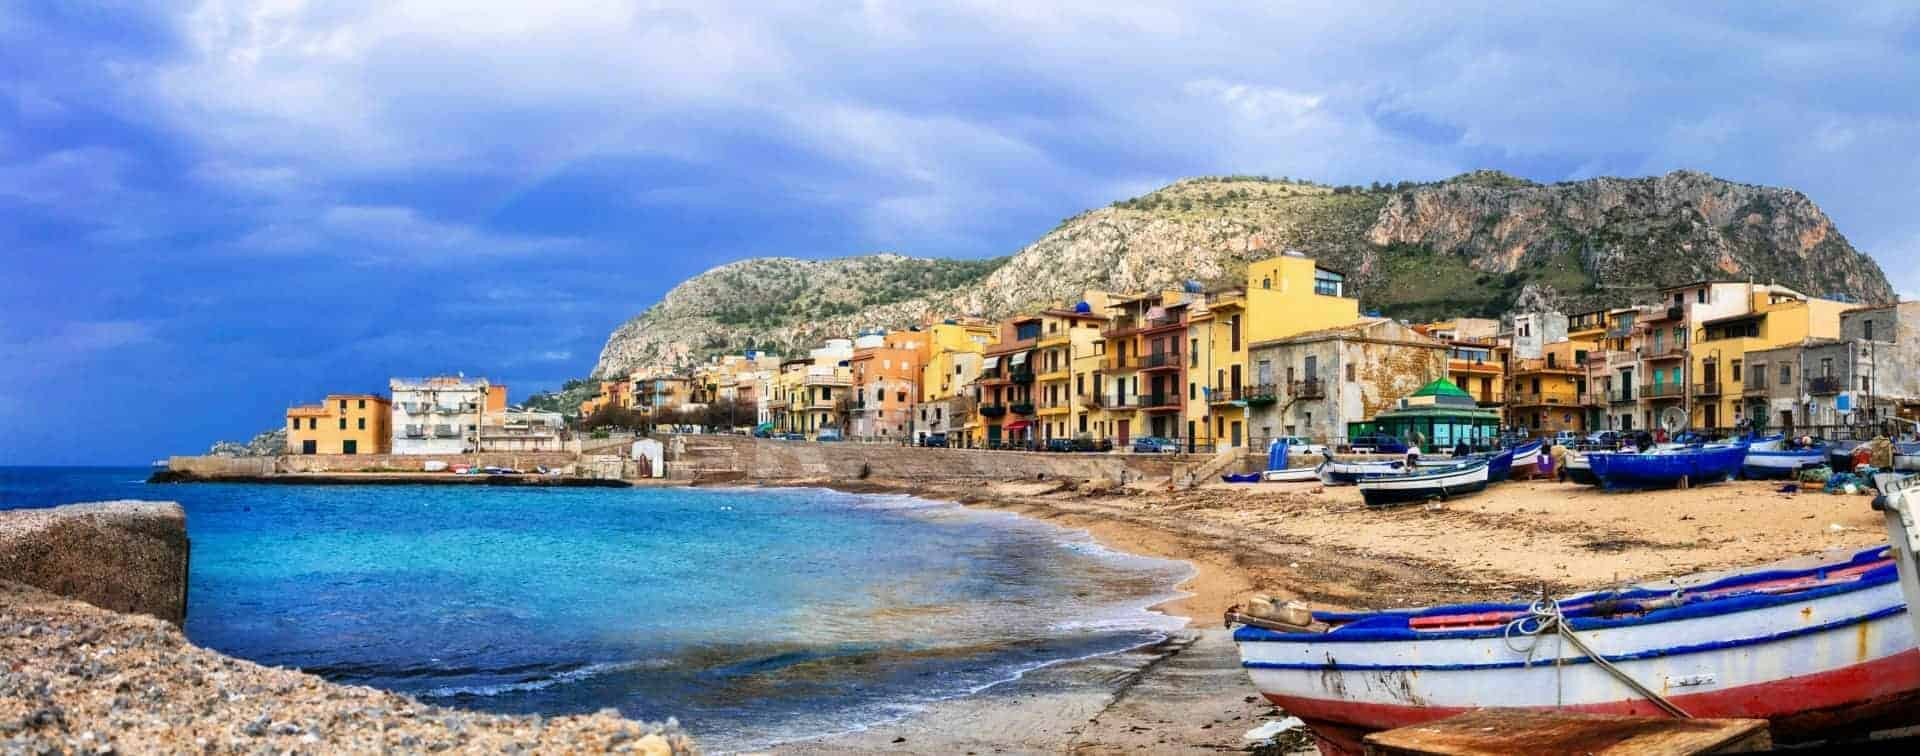 Traditional fishing village Aspra in Sicily, Italy